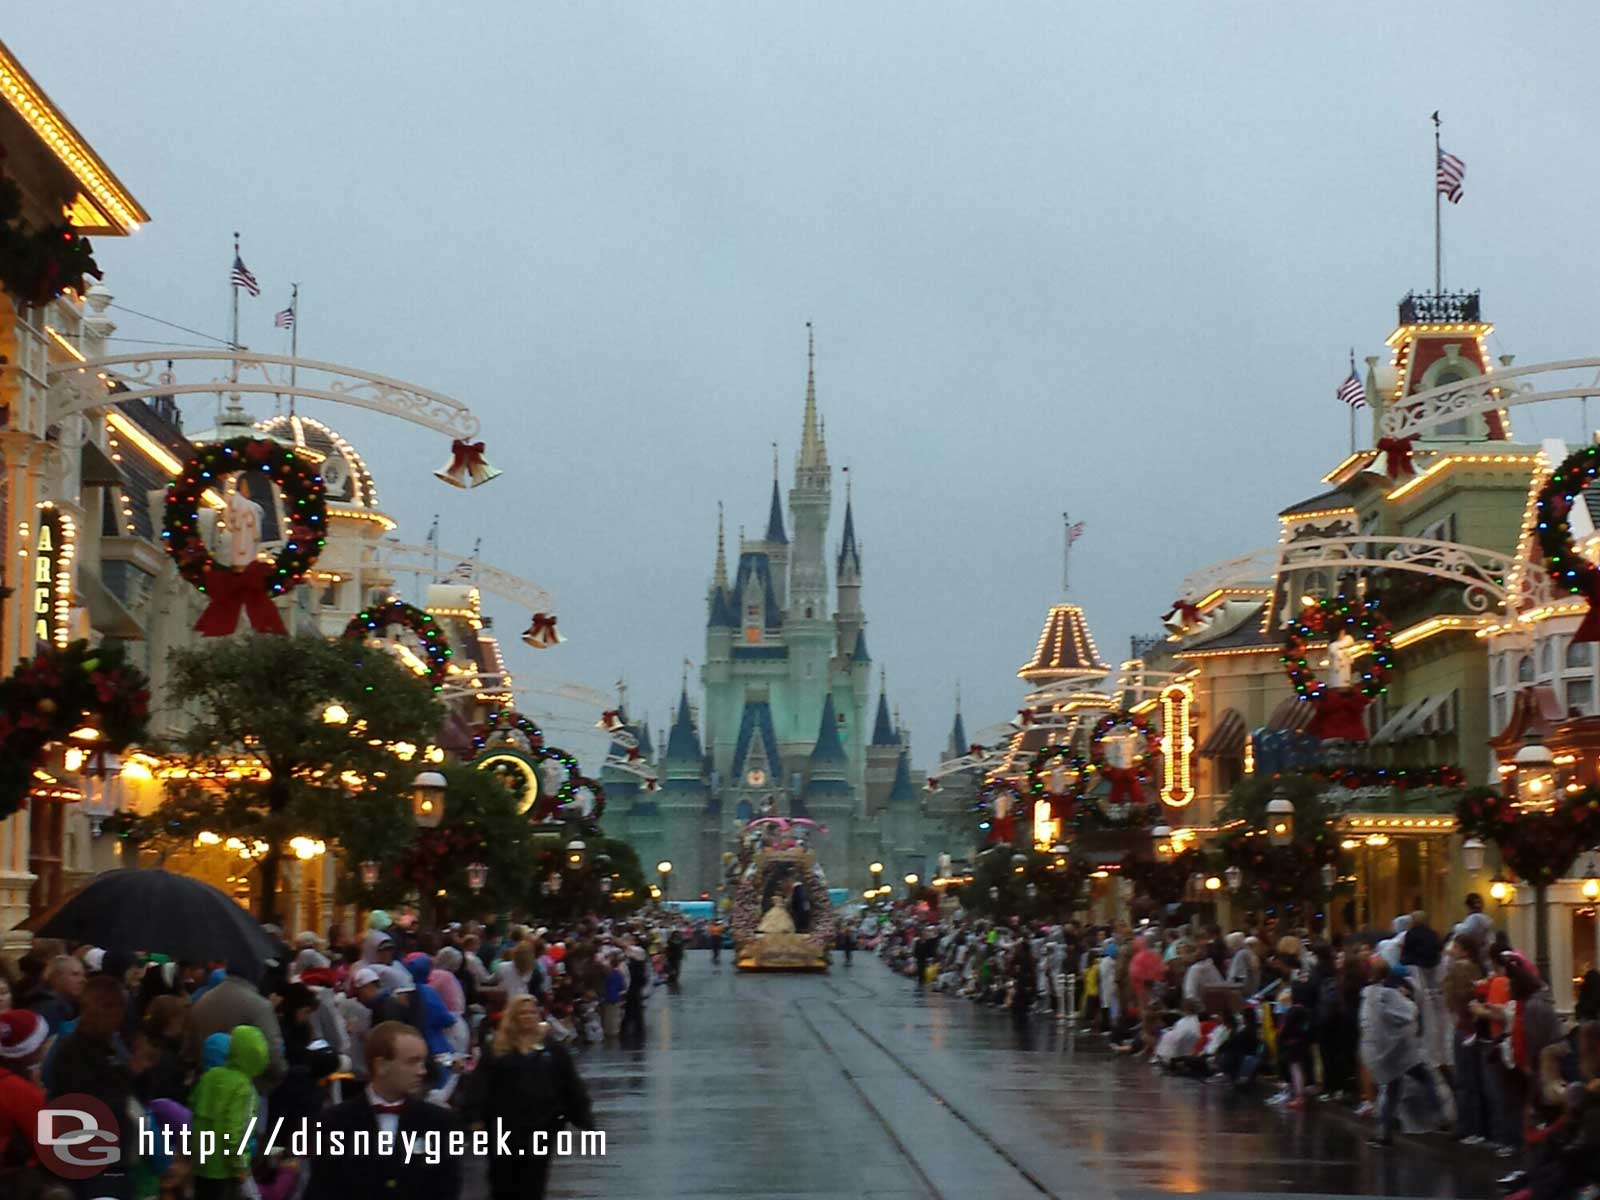 Festival of Fantasy arriving on a gloomy looking Main Street USA – #WDW